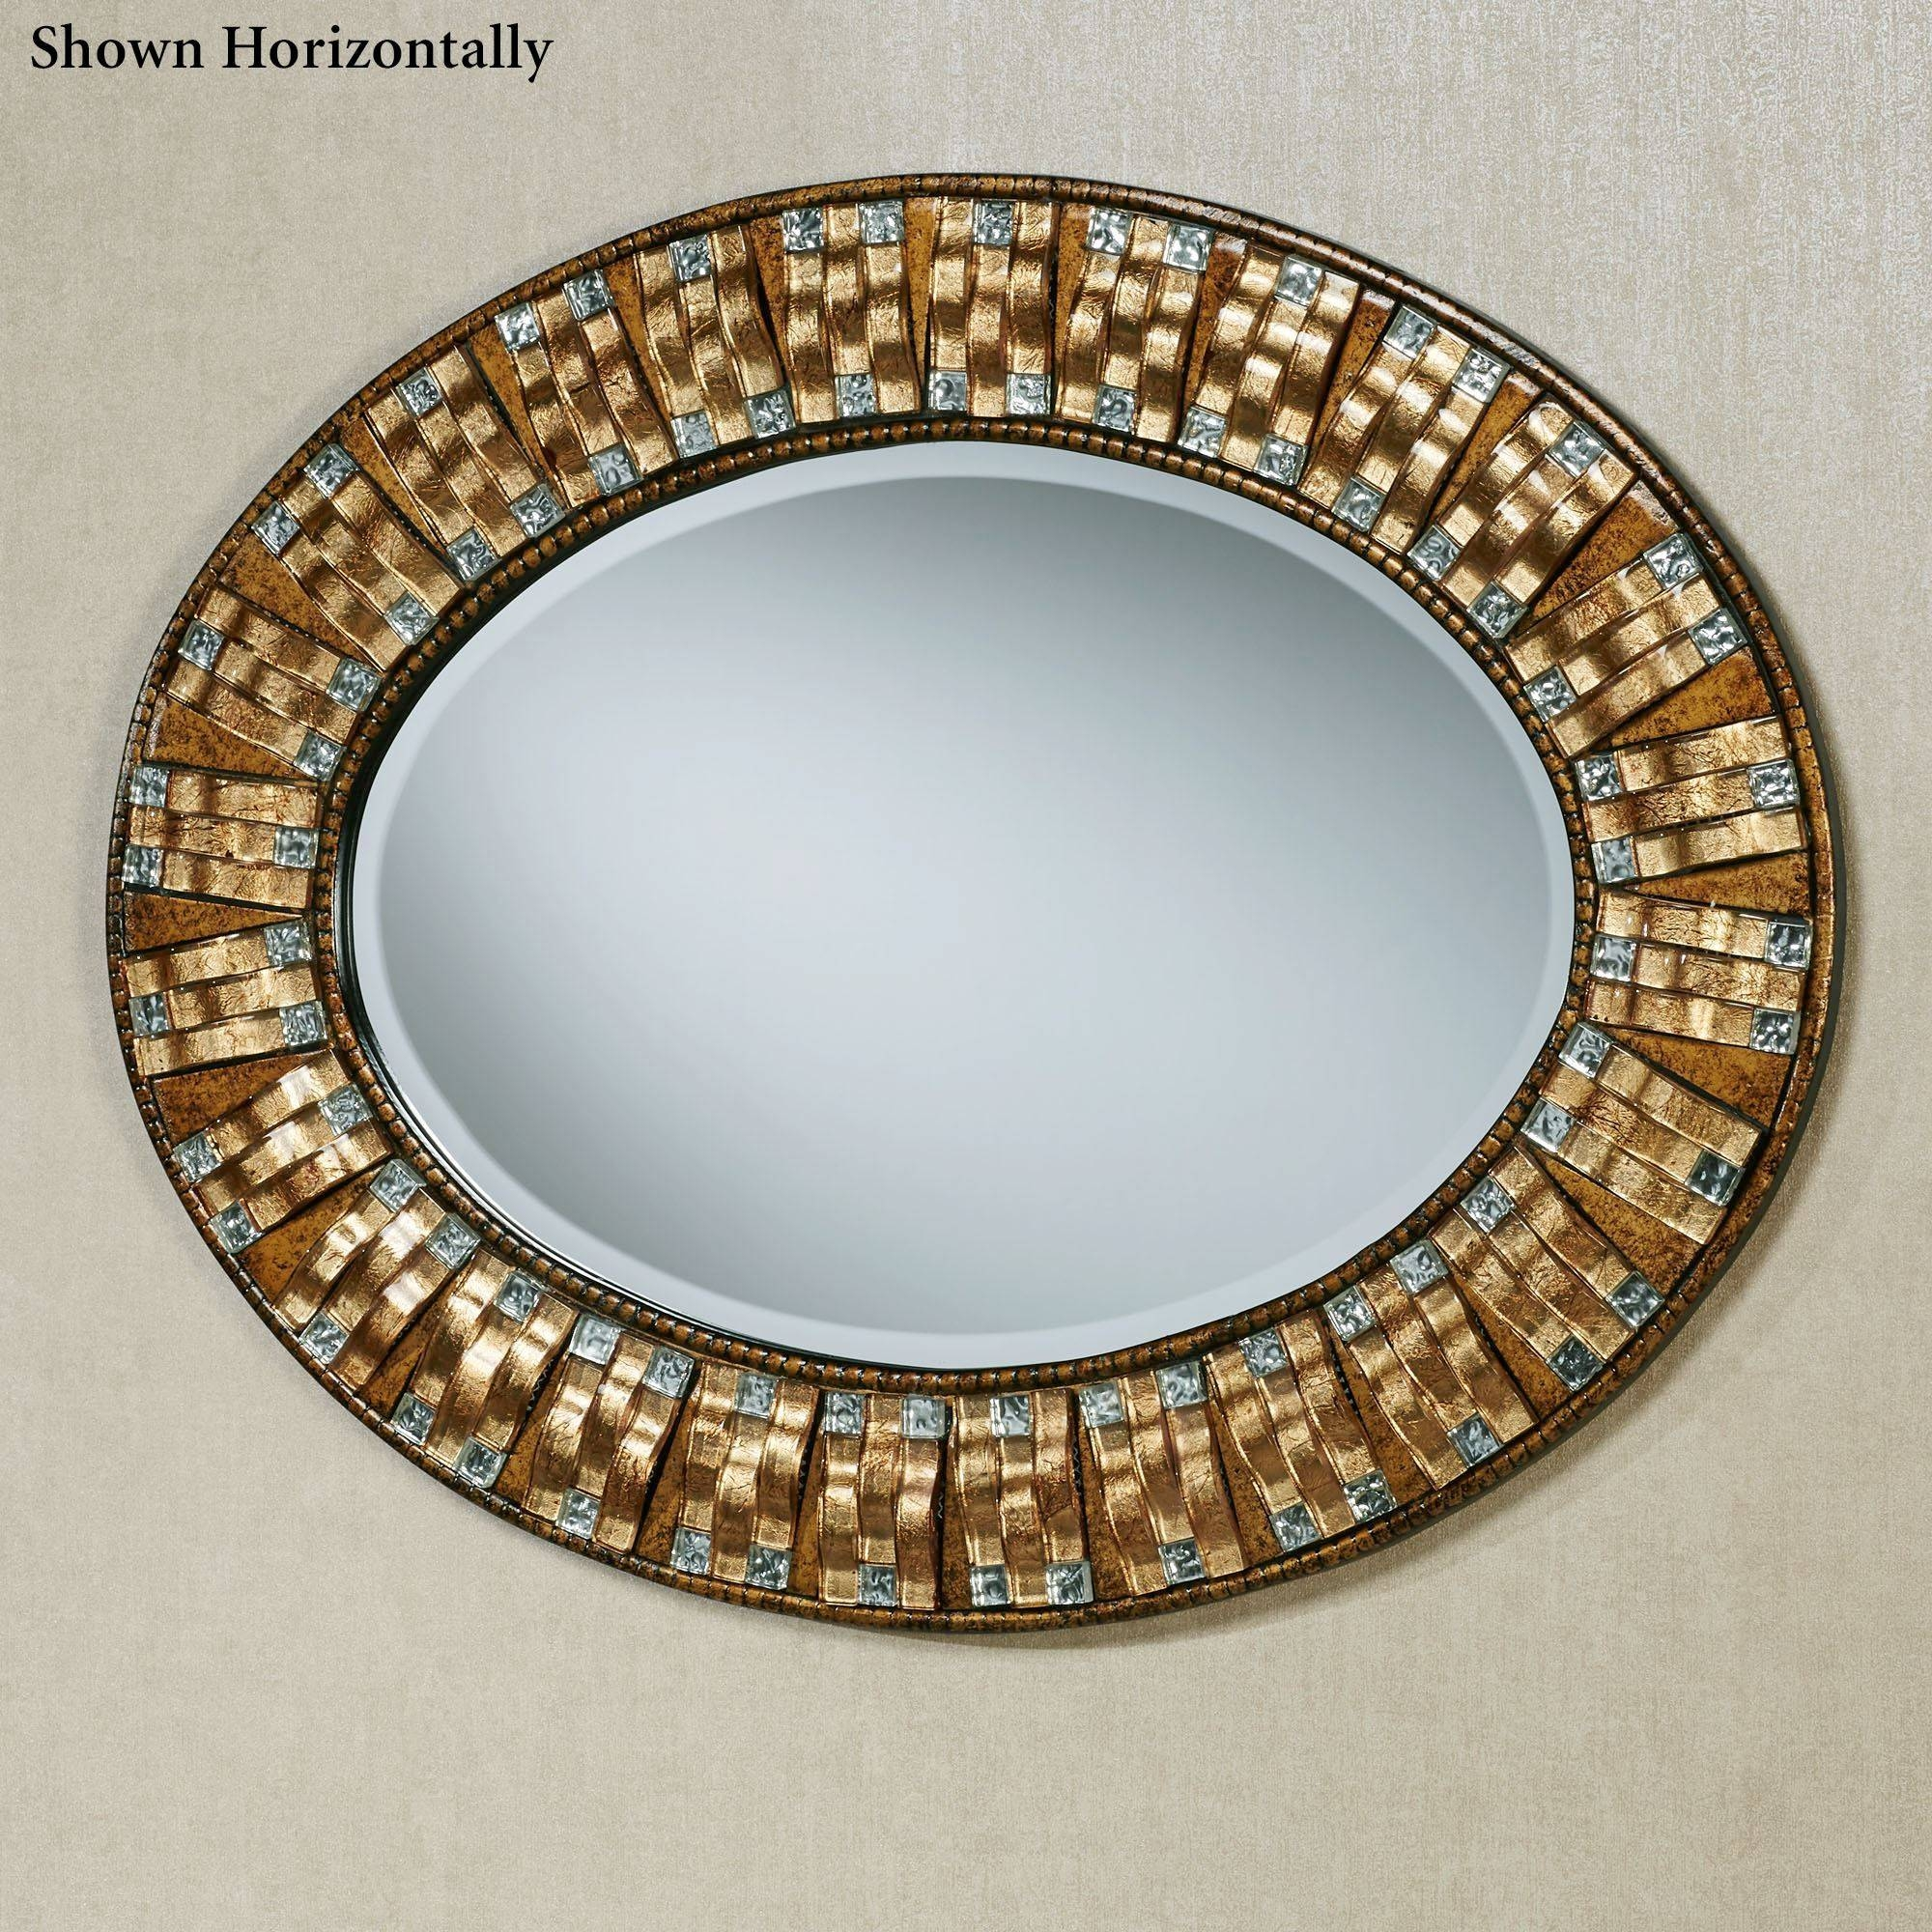 Maybelle Mosaic Oval Wall Mirror with Oval Wall Mirrors (Image 16 of 25)